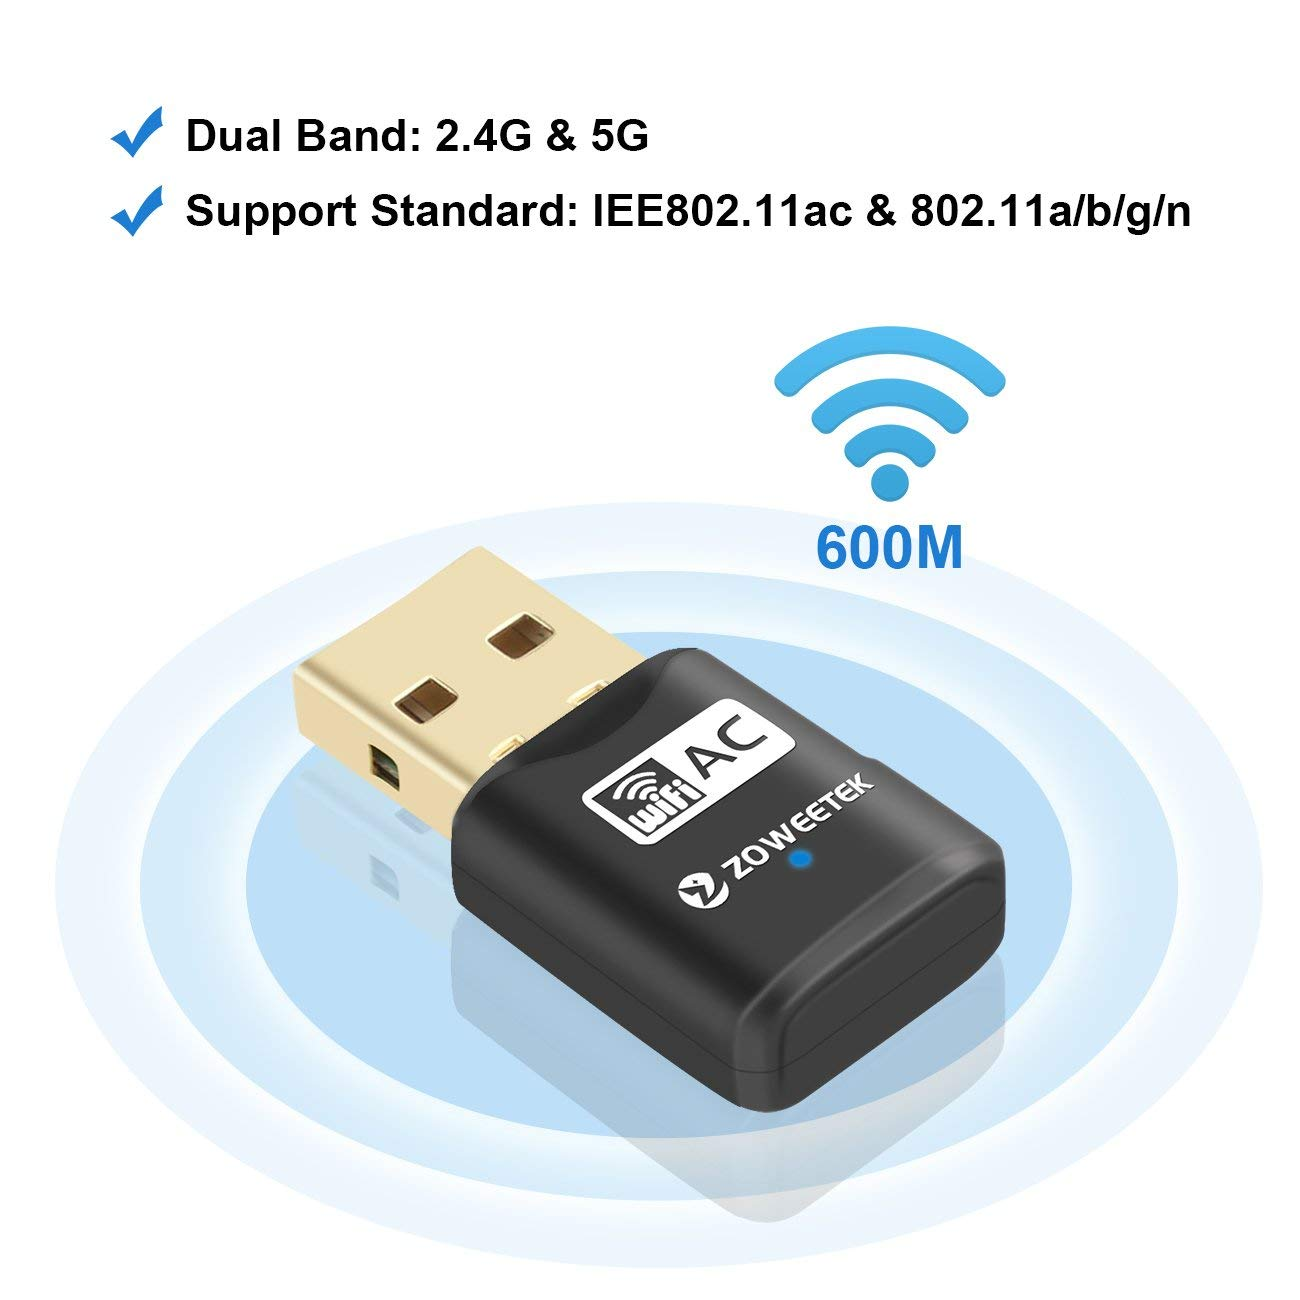 USB 3.0 WiFi AC600 (2.4Ghz & 5Ghz)